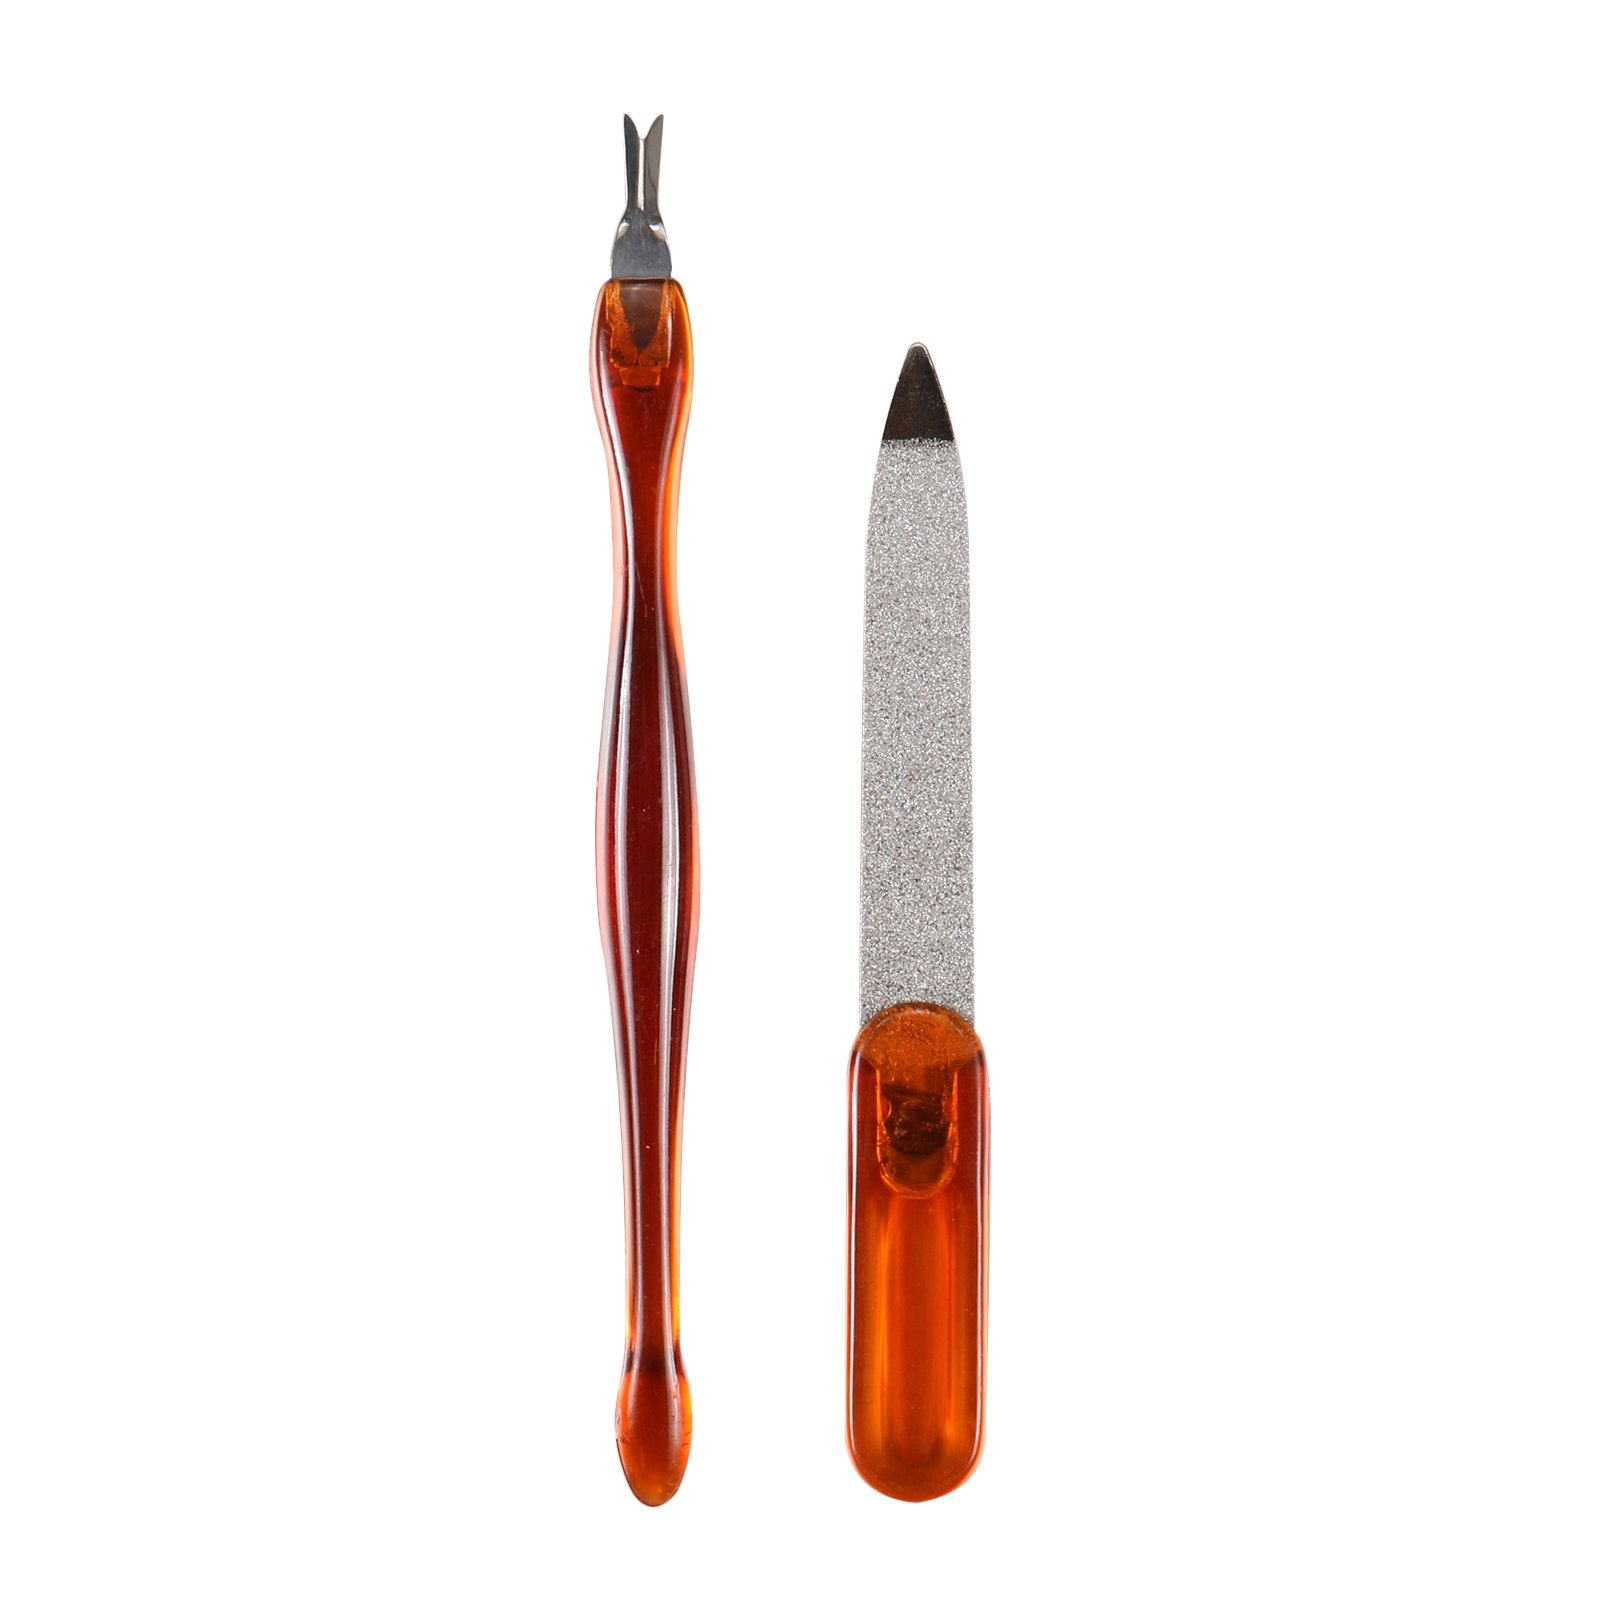 Ottery Professional Beauty tools Nail Art Set Manicure Tools Kit Cuticle Pusher Trimmer Remover Pedicure